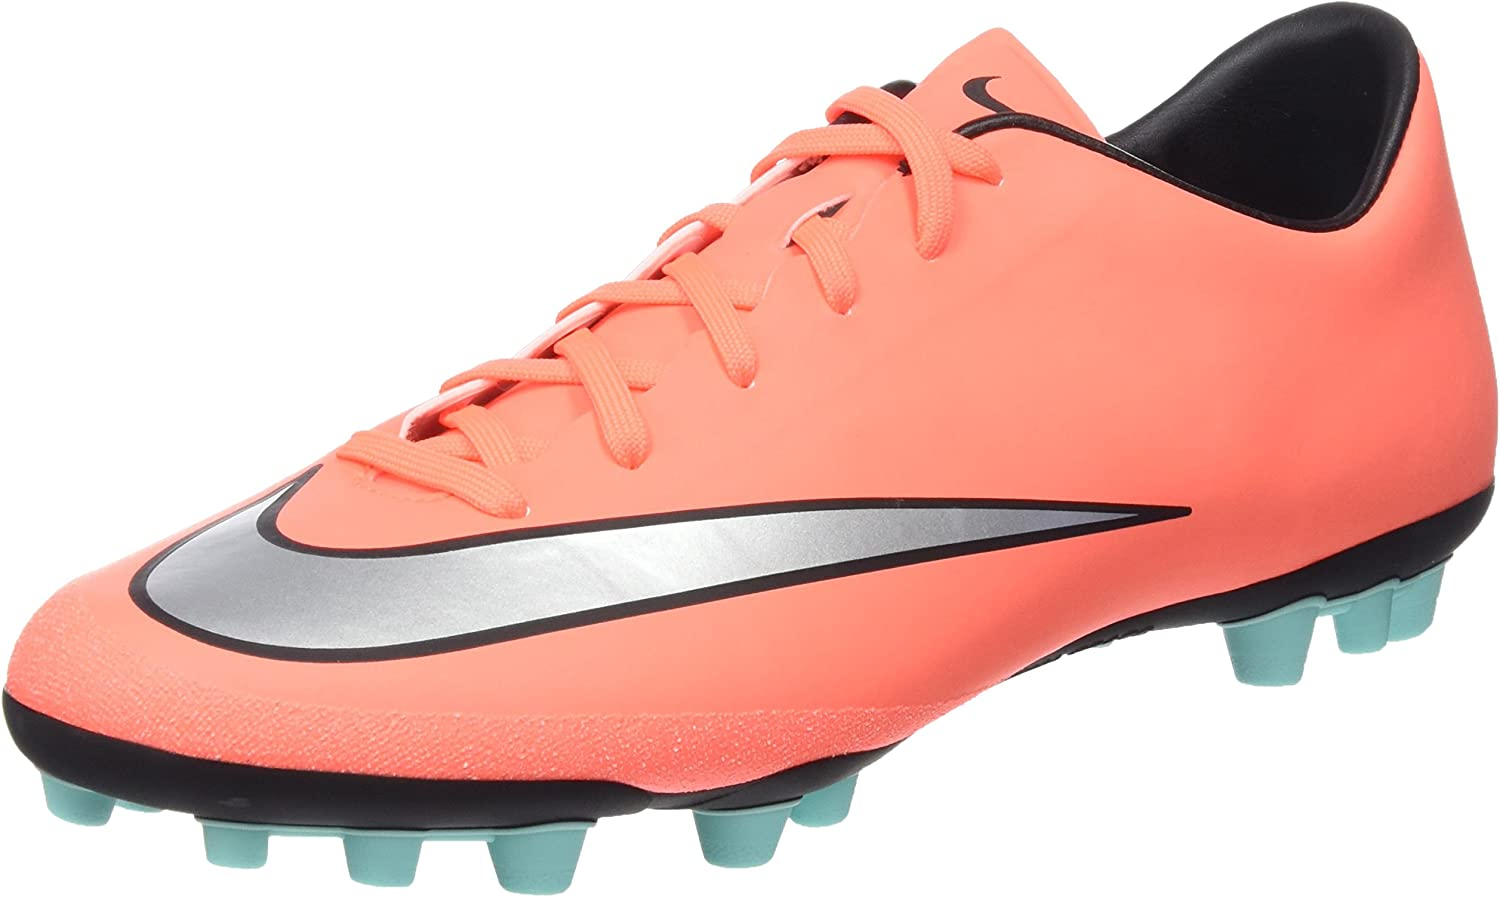 Nike Men's Mercurial Victory V Ag-r Football Boots